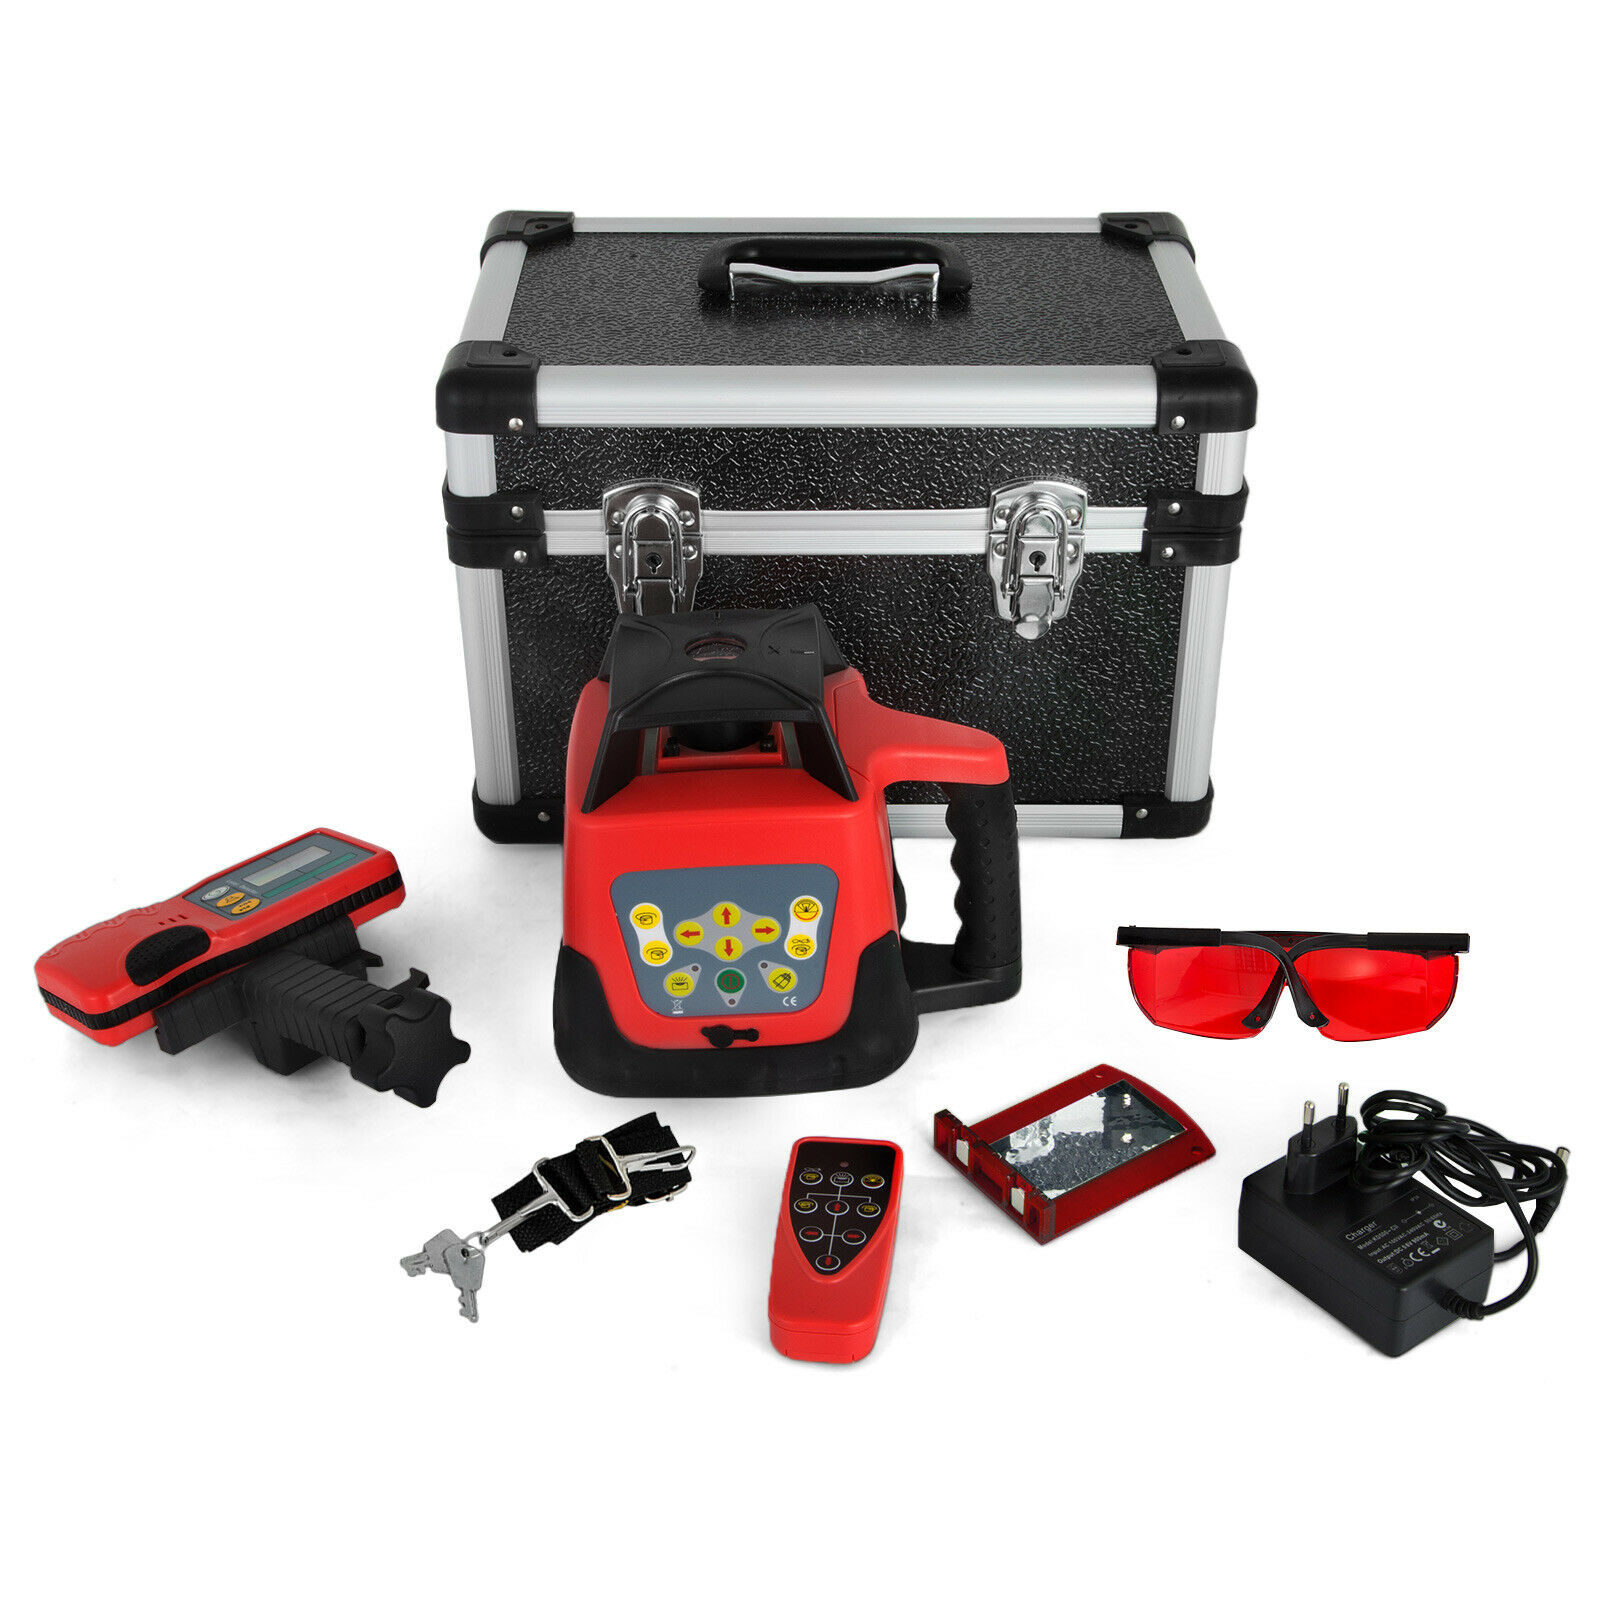 Red Laser Level Rotary Visible Laser Bright and Stable Cross Laser Electronics Construction Laser With Receiver Waterproof IP 54